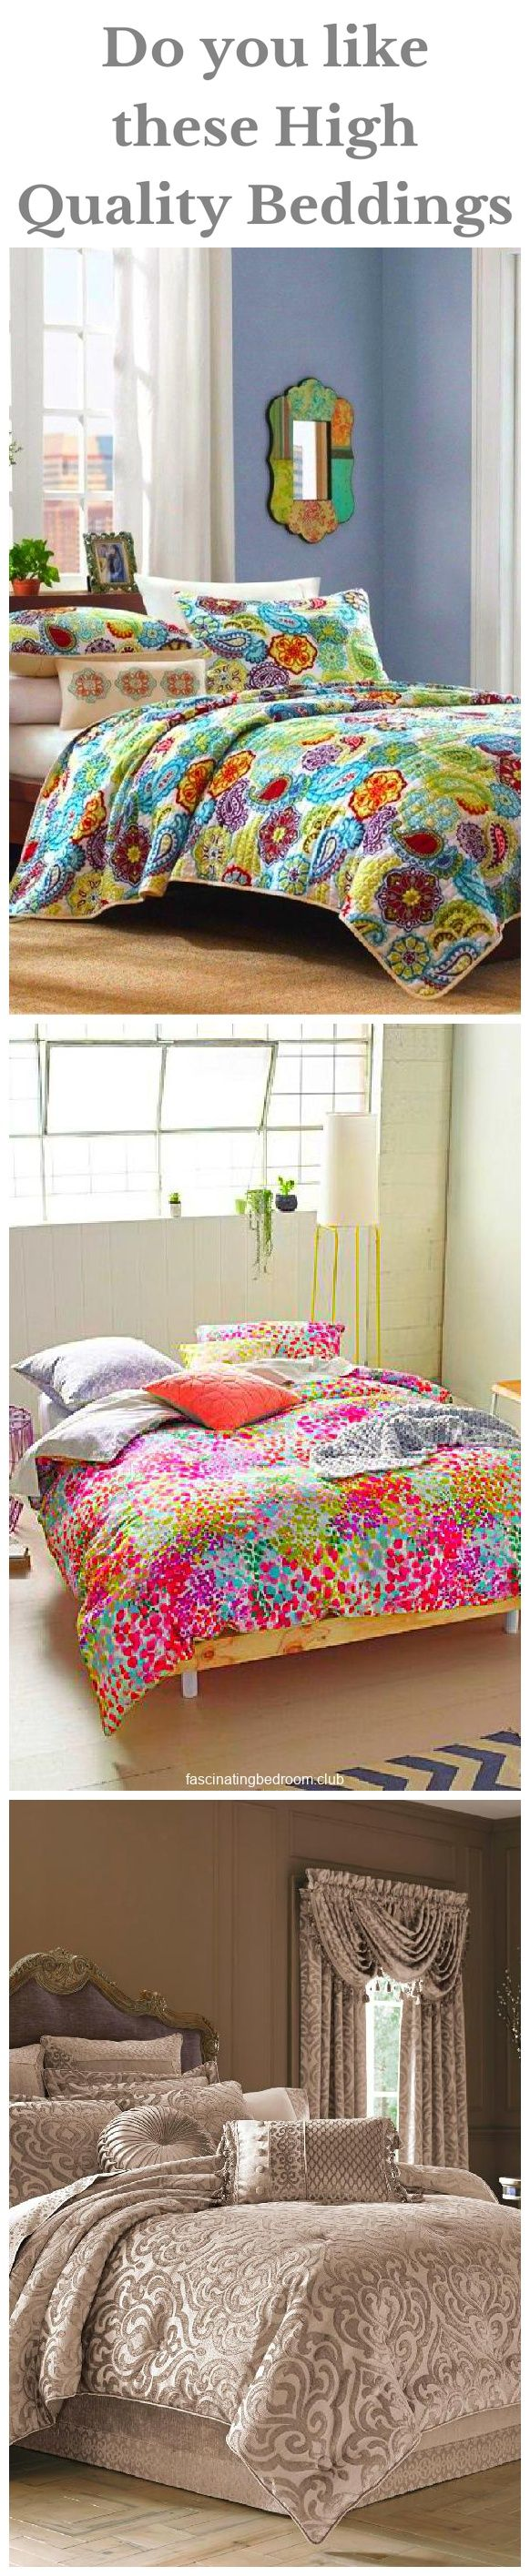 incredible bed linen decorations item id